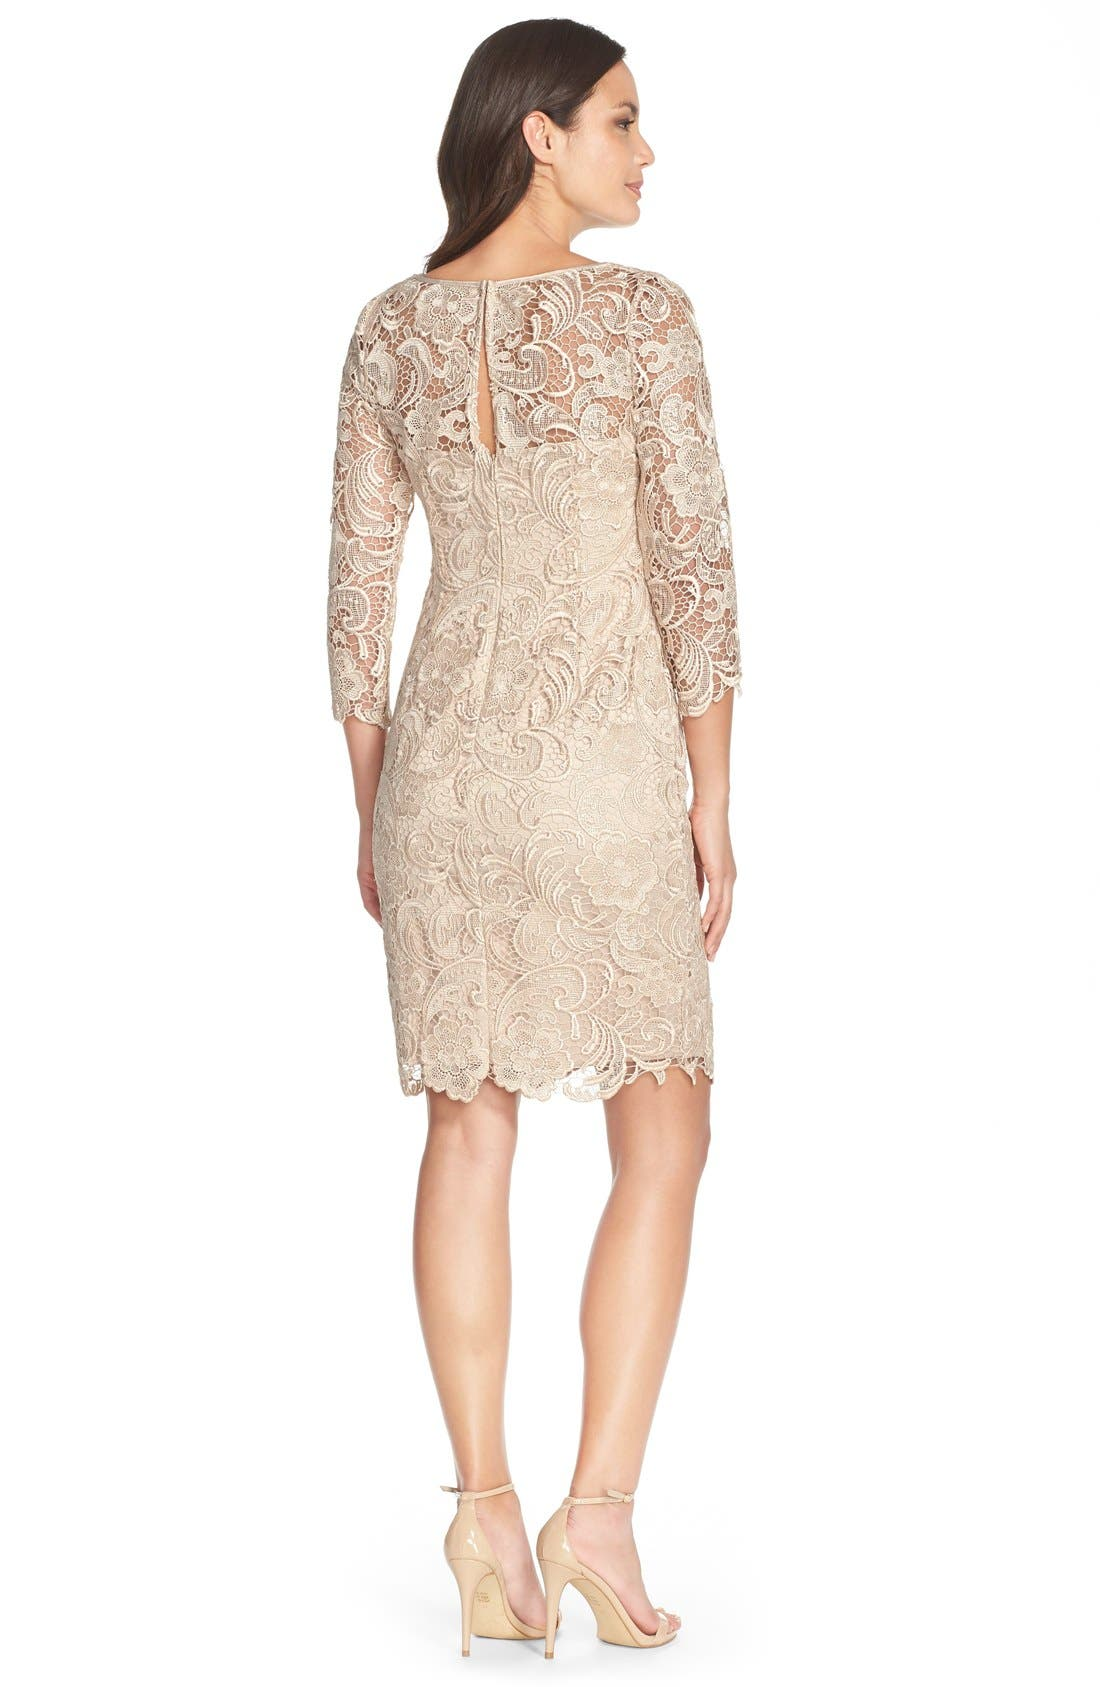 ADRIANNA PAPELL,                             Illusion Yoke Guipure Lace Sheath Dress,                             Alternate thumbnail 2, color,                             250